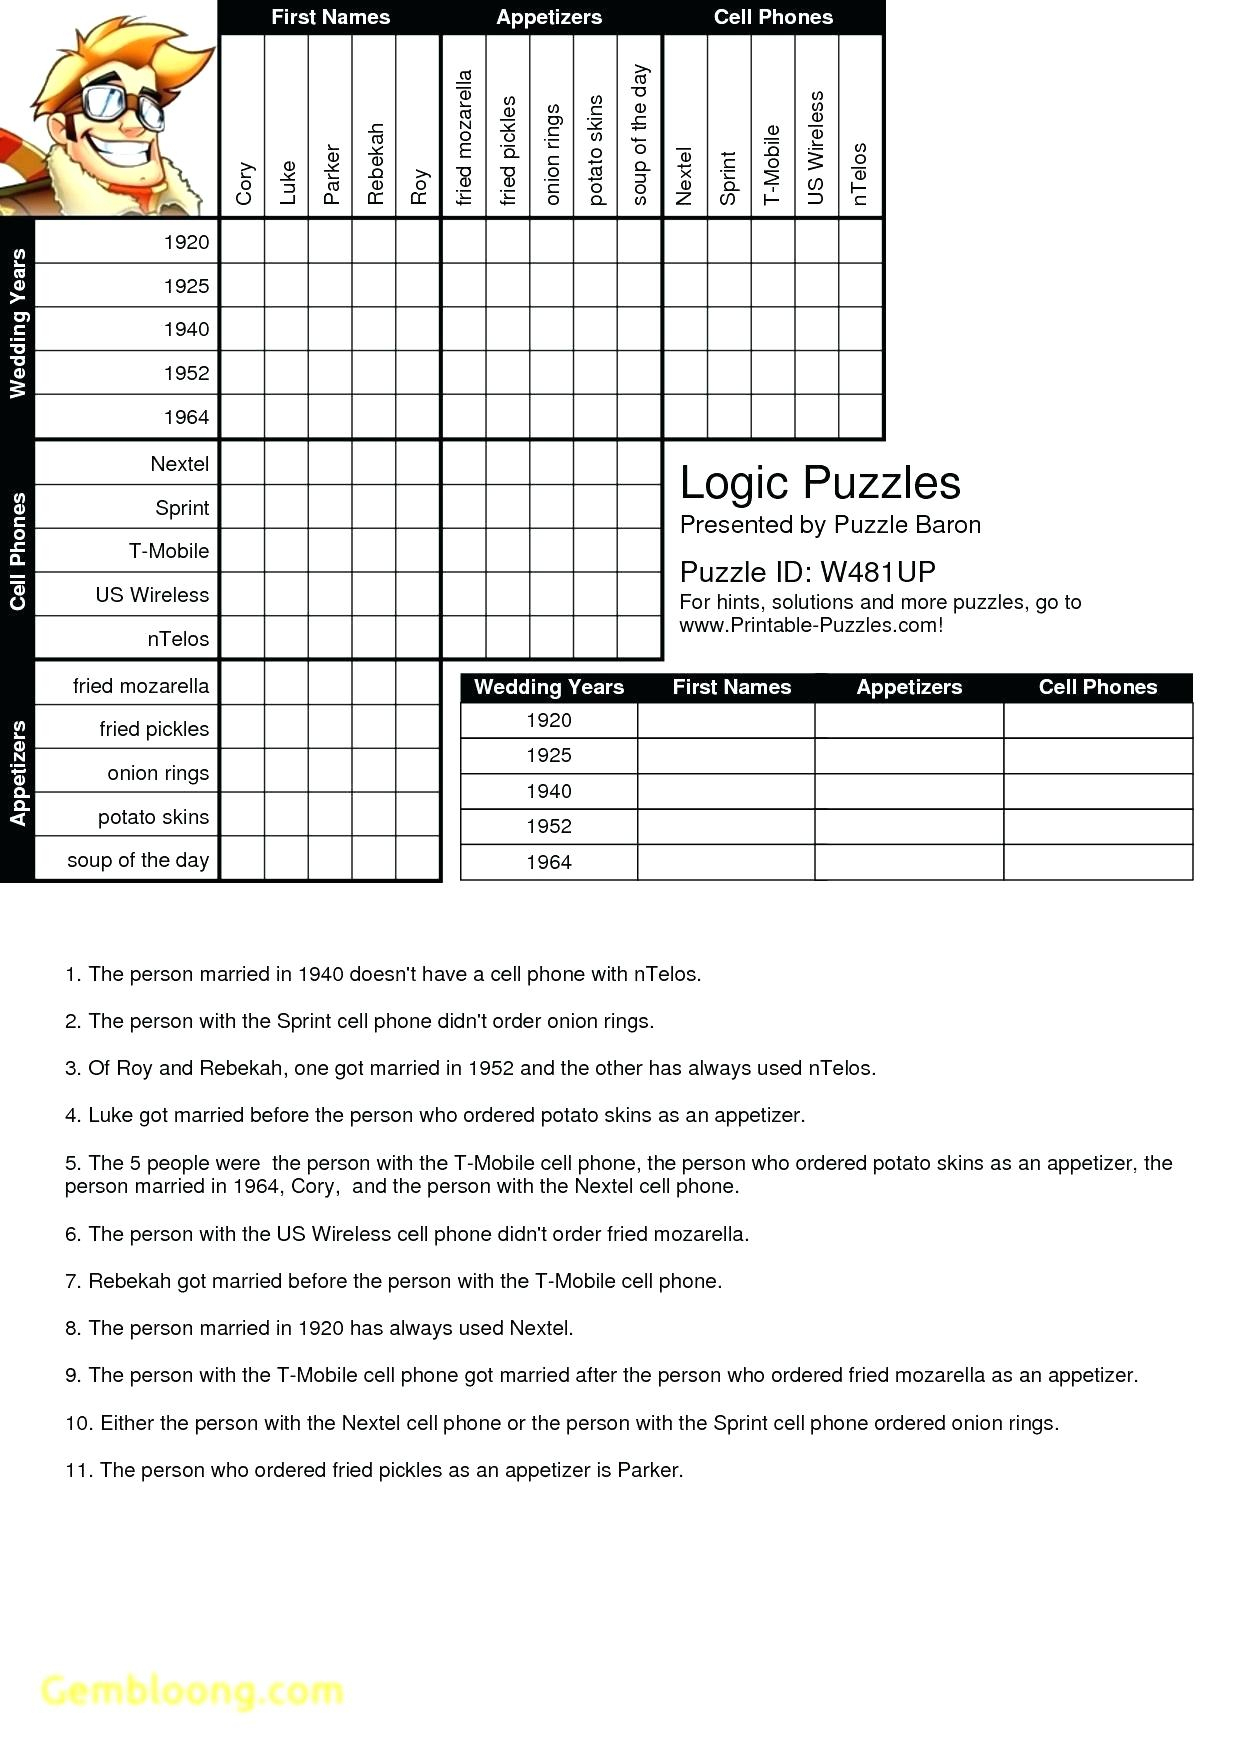 Printable Logic Puzzle Dingbat Rebus Puzzles Dingbats S Rebus Puzzle - Printable Logic Puzzles For Adults